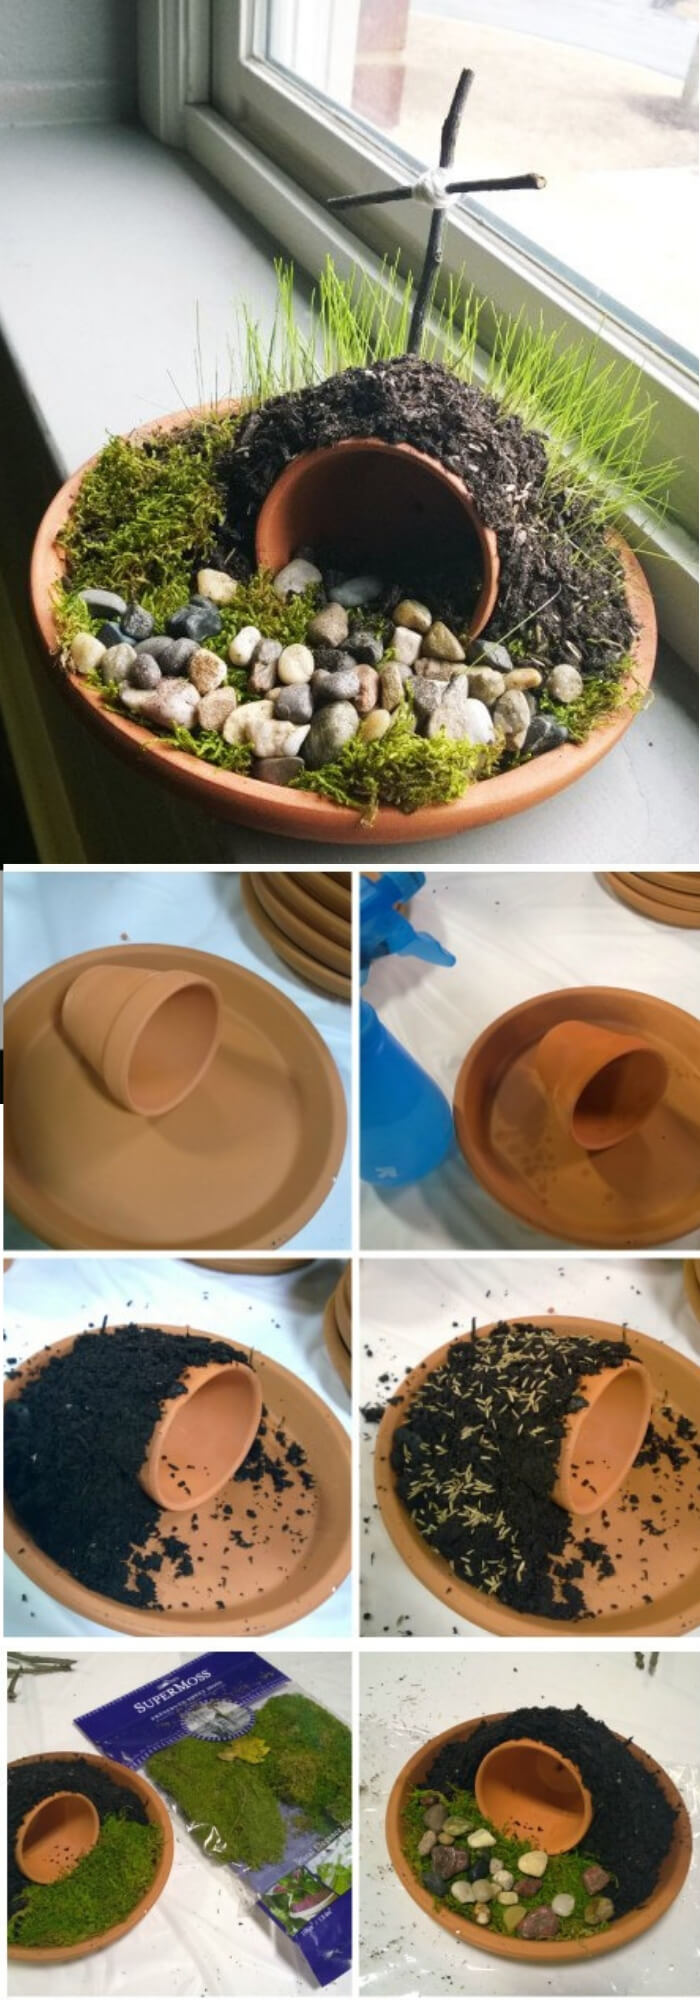 Resurrection garden for your kids | Creative Easter Garden Projects & Ideas Your Kids Will Love